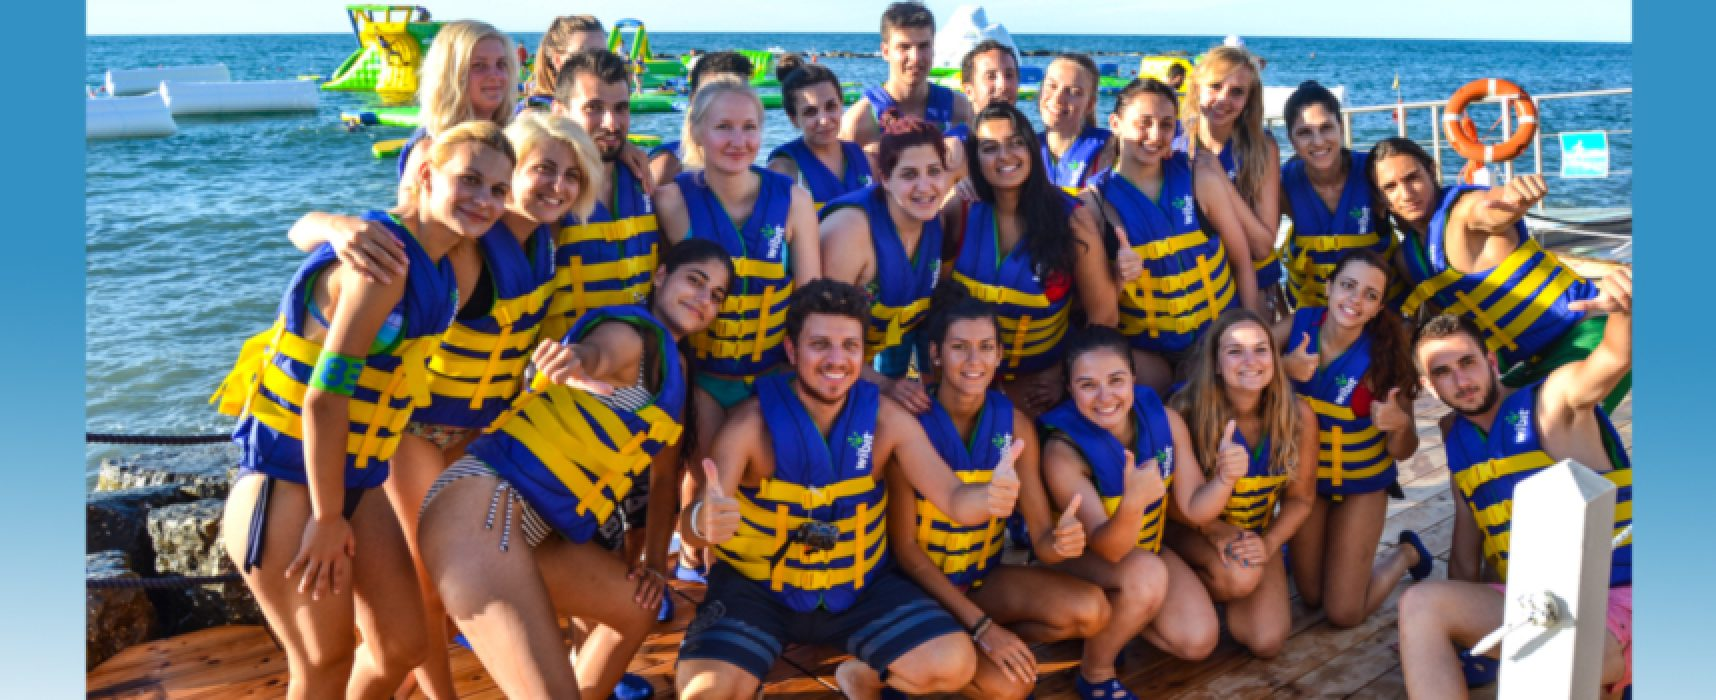 Summer University, ragazzi a Bisceglie: inizio sprint a Splash Sea / VIDEO e FOTO